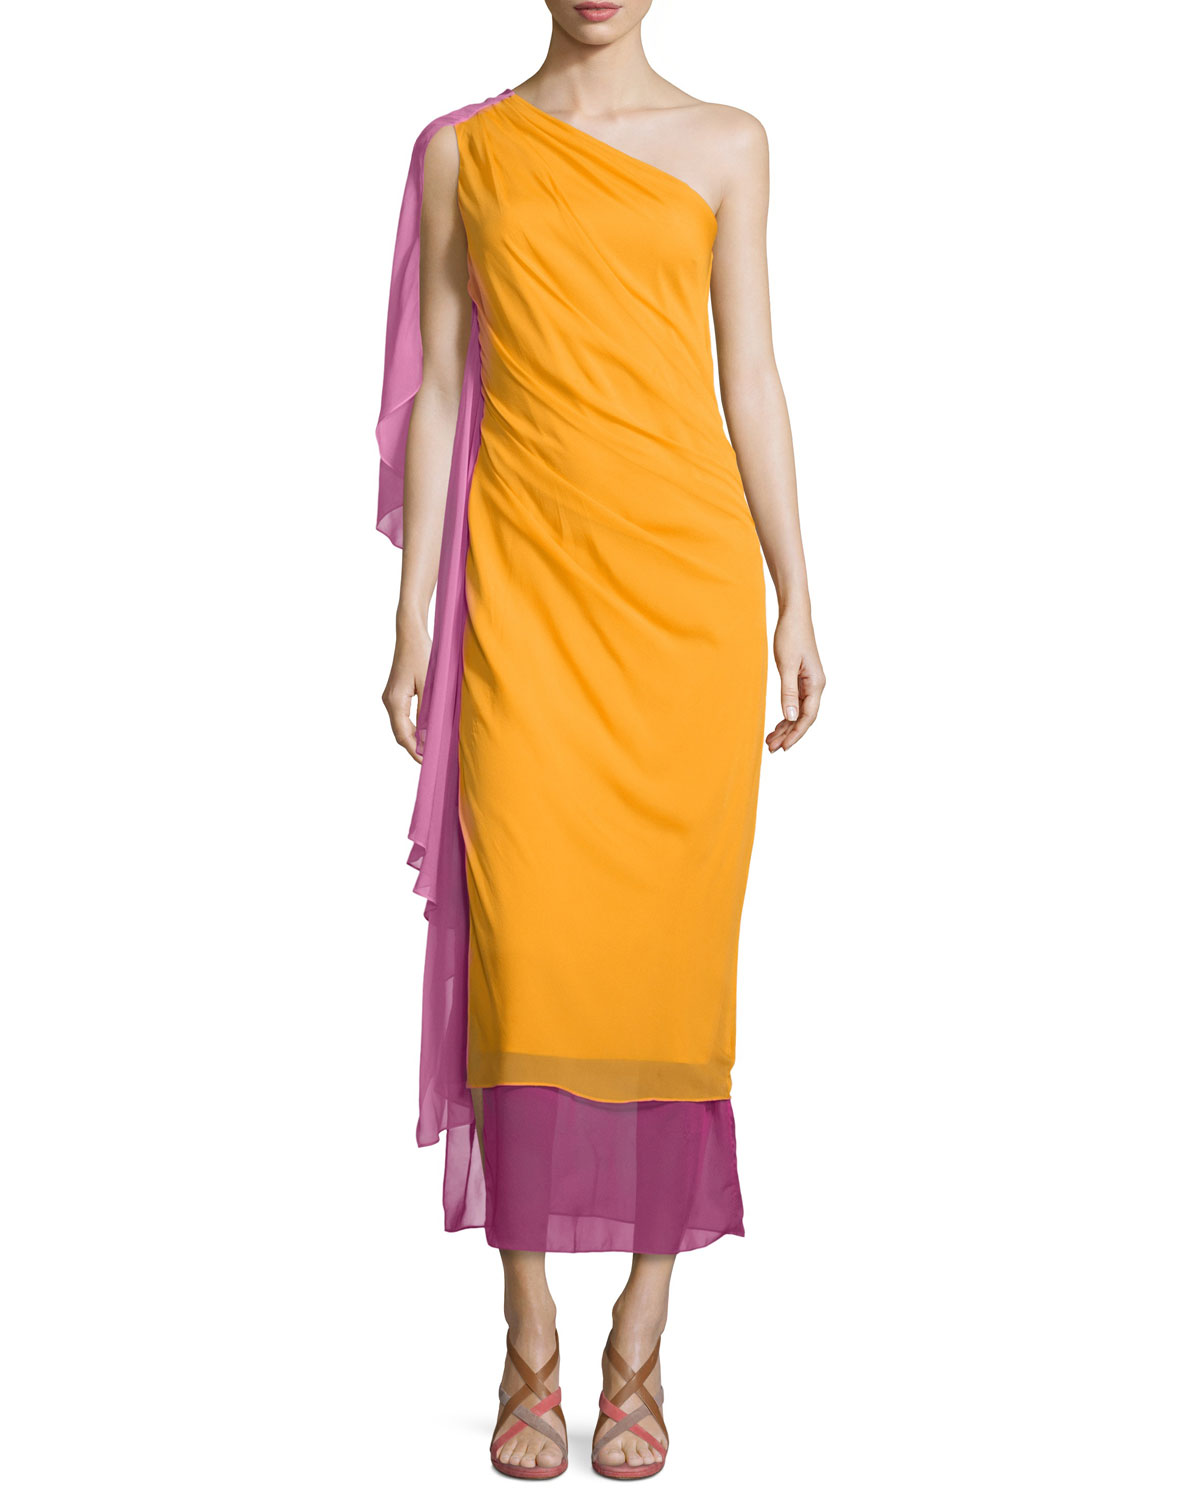 Nori Colorblock Silk Maxi Dress, Saffron, Women's, Size: 0 - Diane von Furstenberg